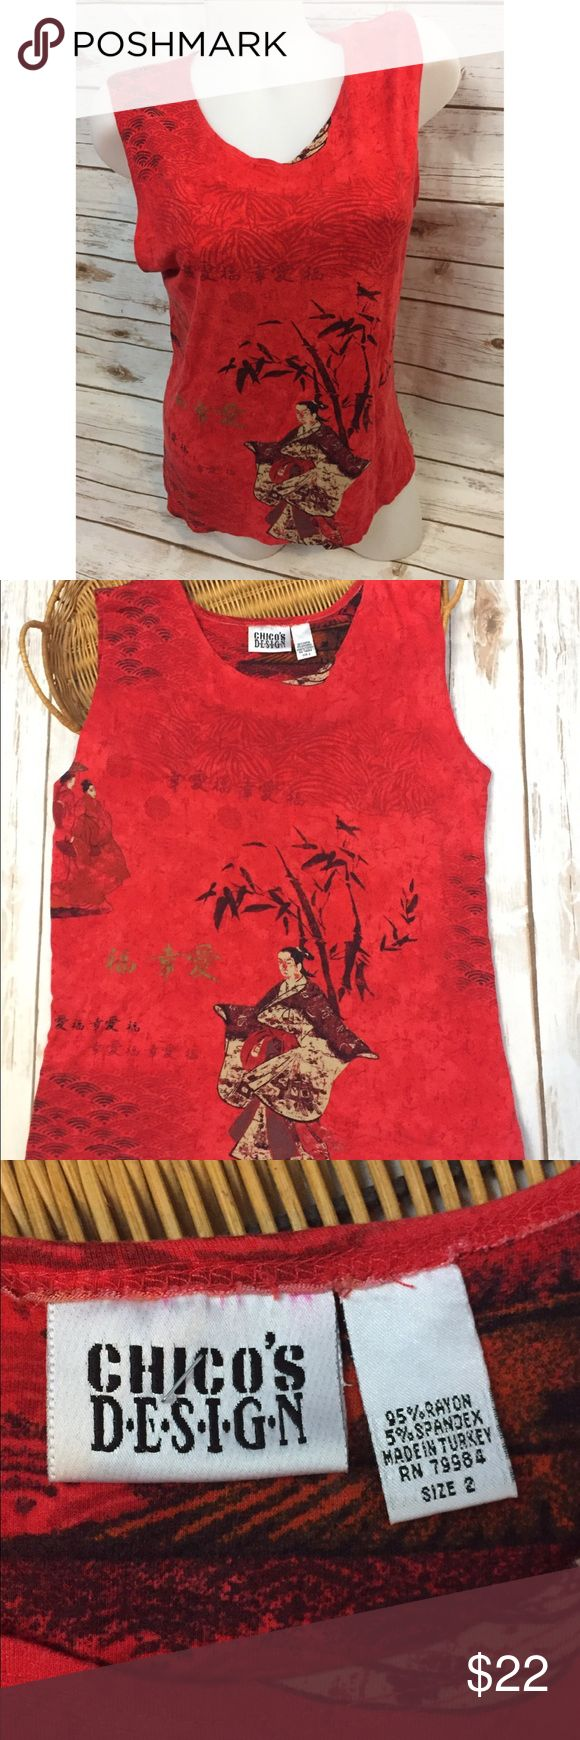 """Chicos Design Women's sz 2, L 12 Oriental Red Cami Chicos Design Women's sizes 2, L,12 Oriental Inspired Design Red Sleeveless Cami Gently Used Condition. No rips, holes or stains.  *Measurements are approximate; measured flat  Armpit to Armpit- 19"""" Length from back, middle of neck to hem- 22"""" Chico's Tops Camisoles"""